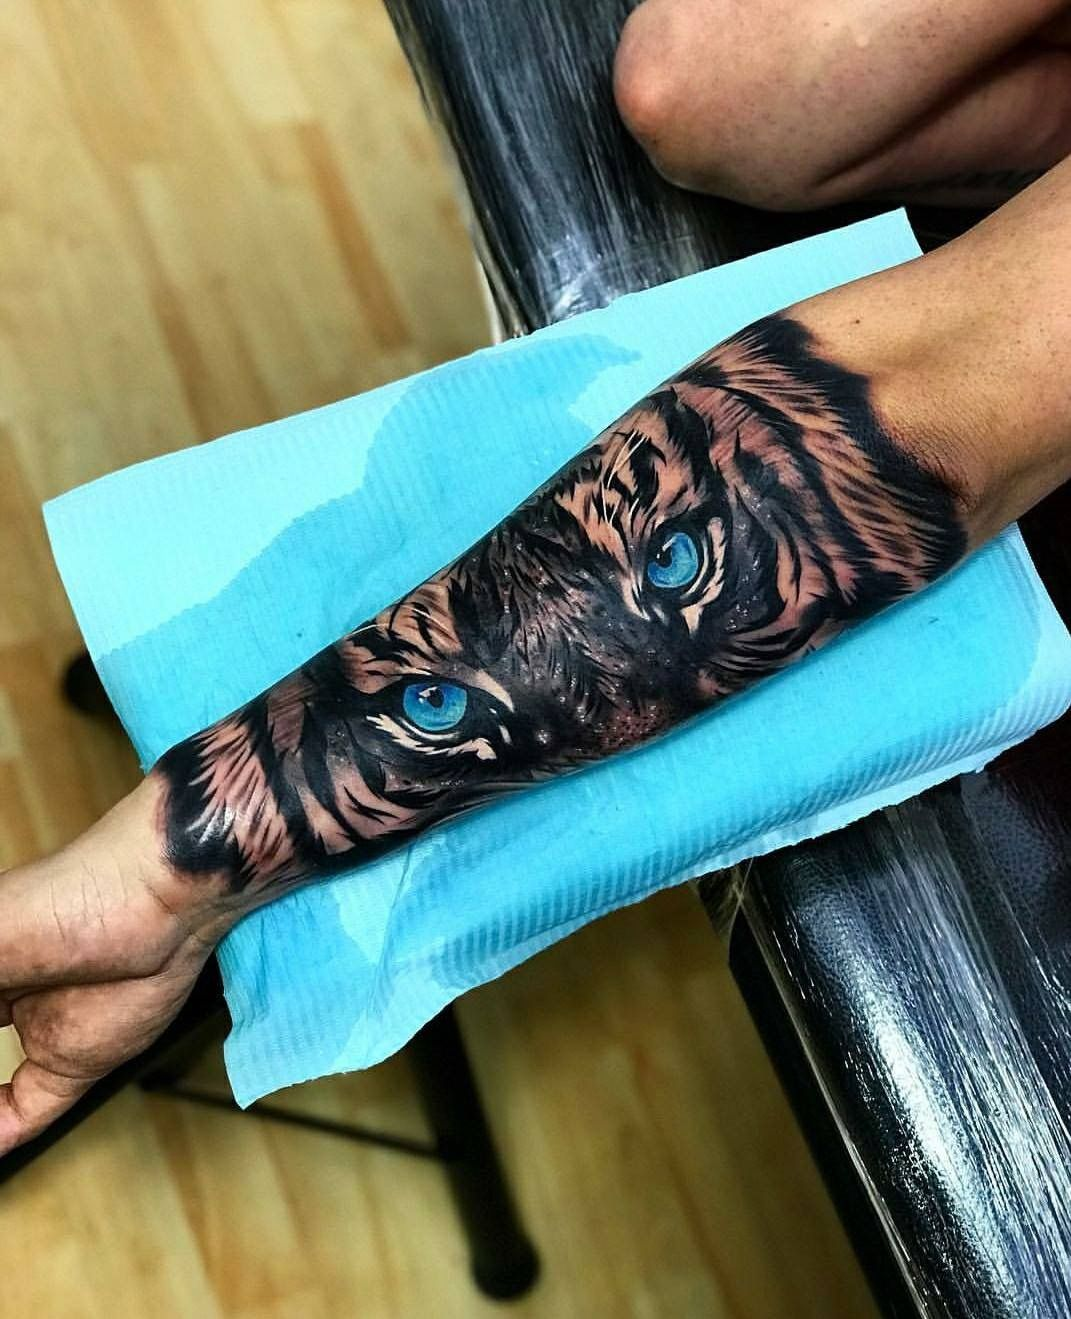 Love The Tiger Eyes Cool Arm Tattoos Arm Tattoos For Guys Tattoos For Guys